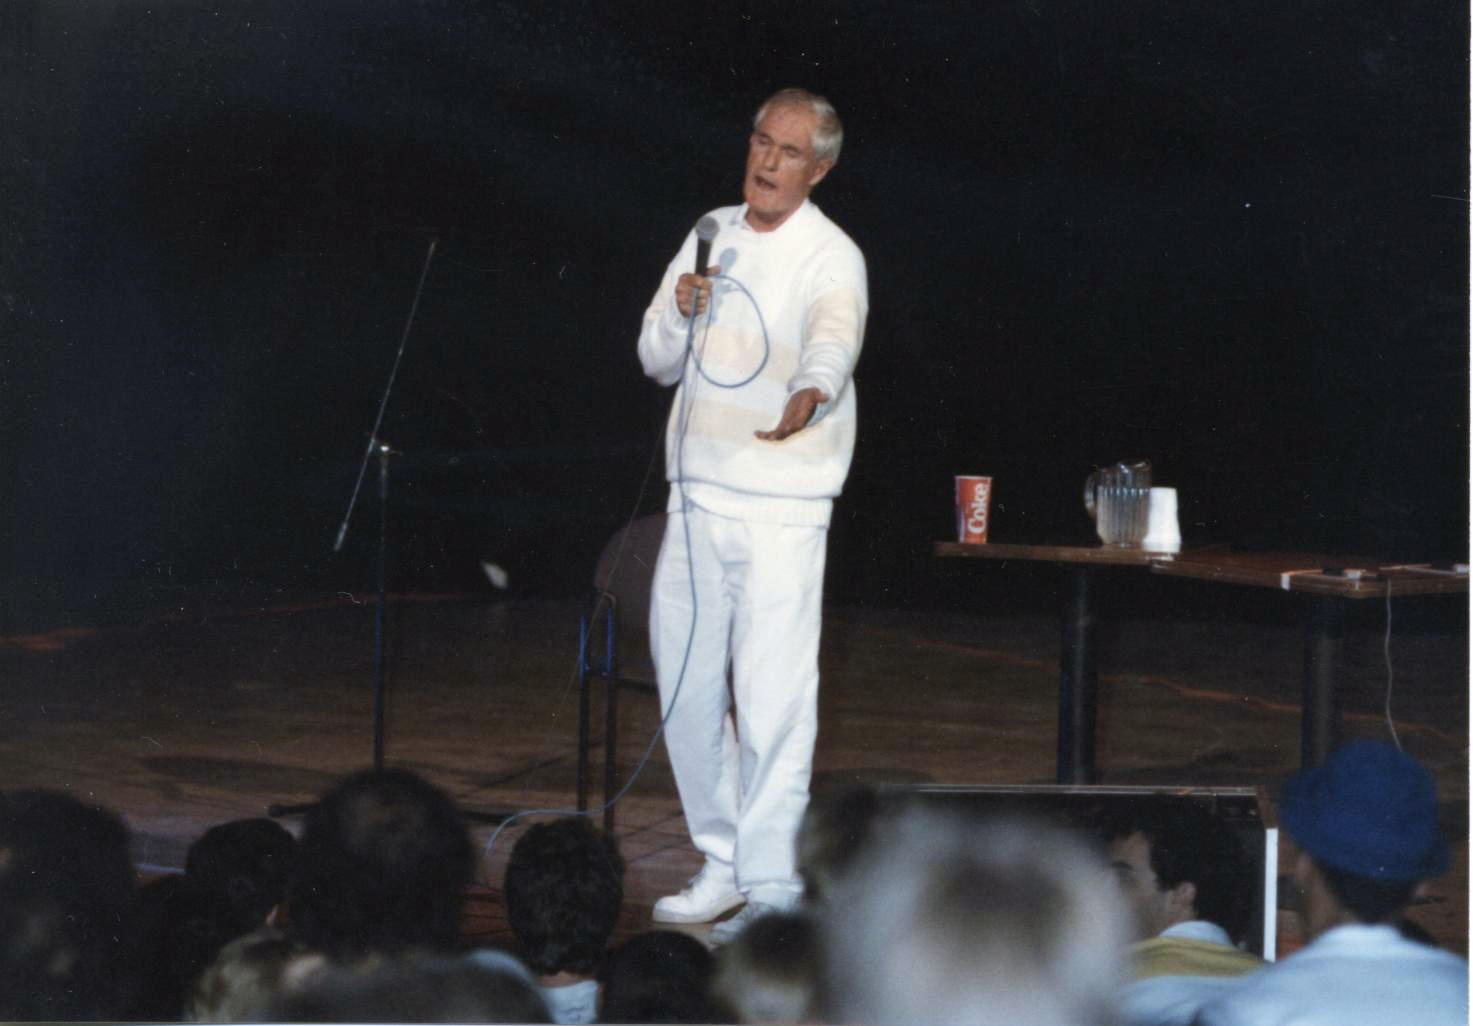 [Dr. Timothy Leary, Liberty Hall, Lawrence, Kansas. Dr. Timothy's performance at the River City Union, September 12, 1987. Photograph by Doug L. Miller: used with permission]